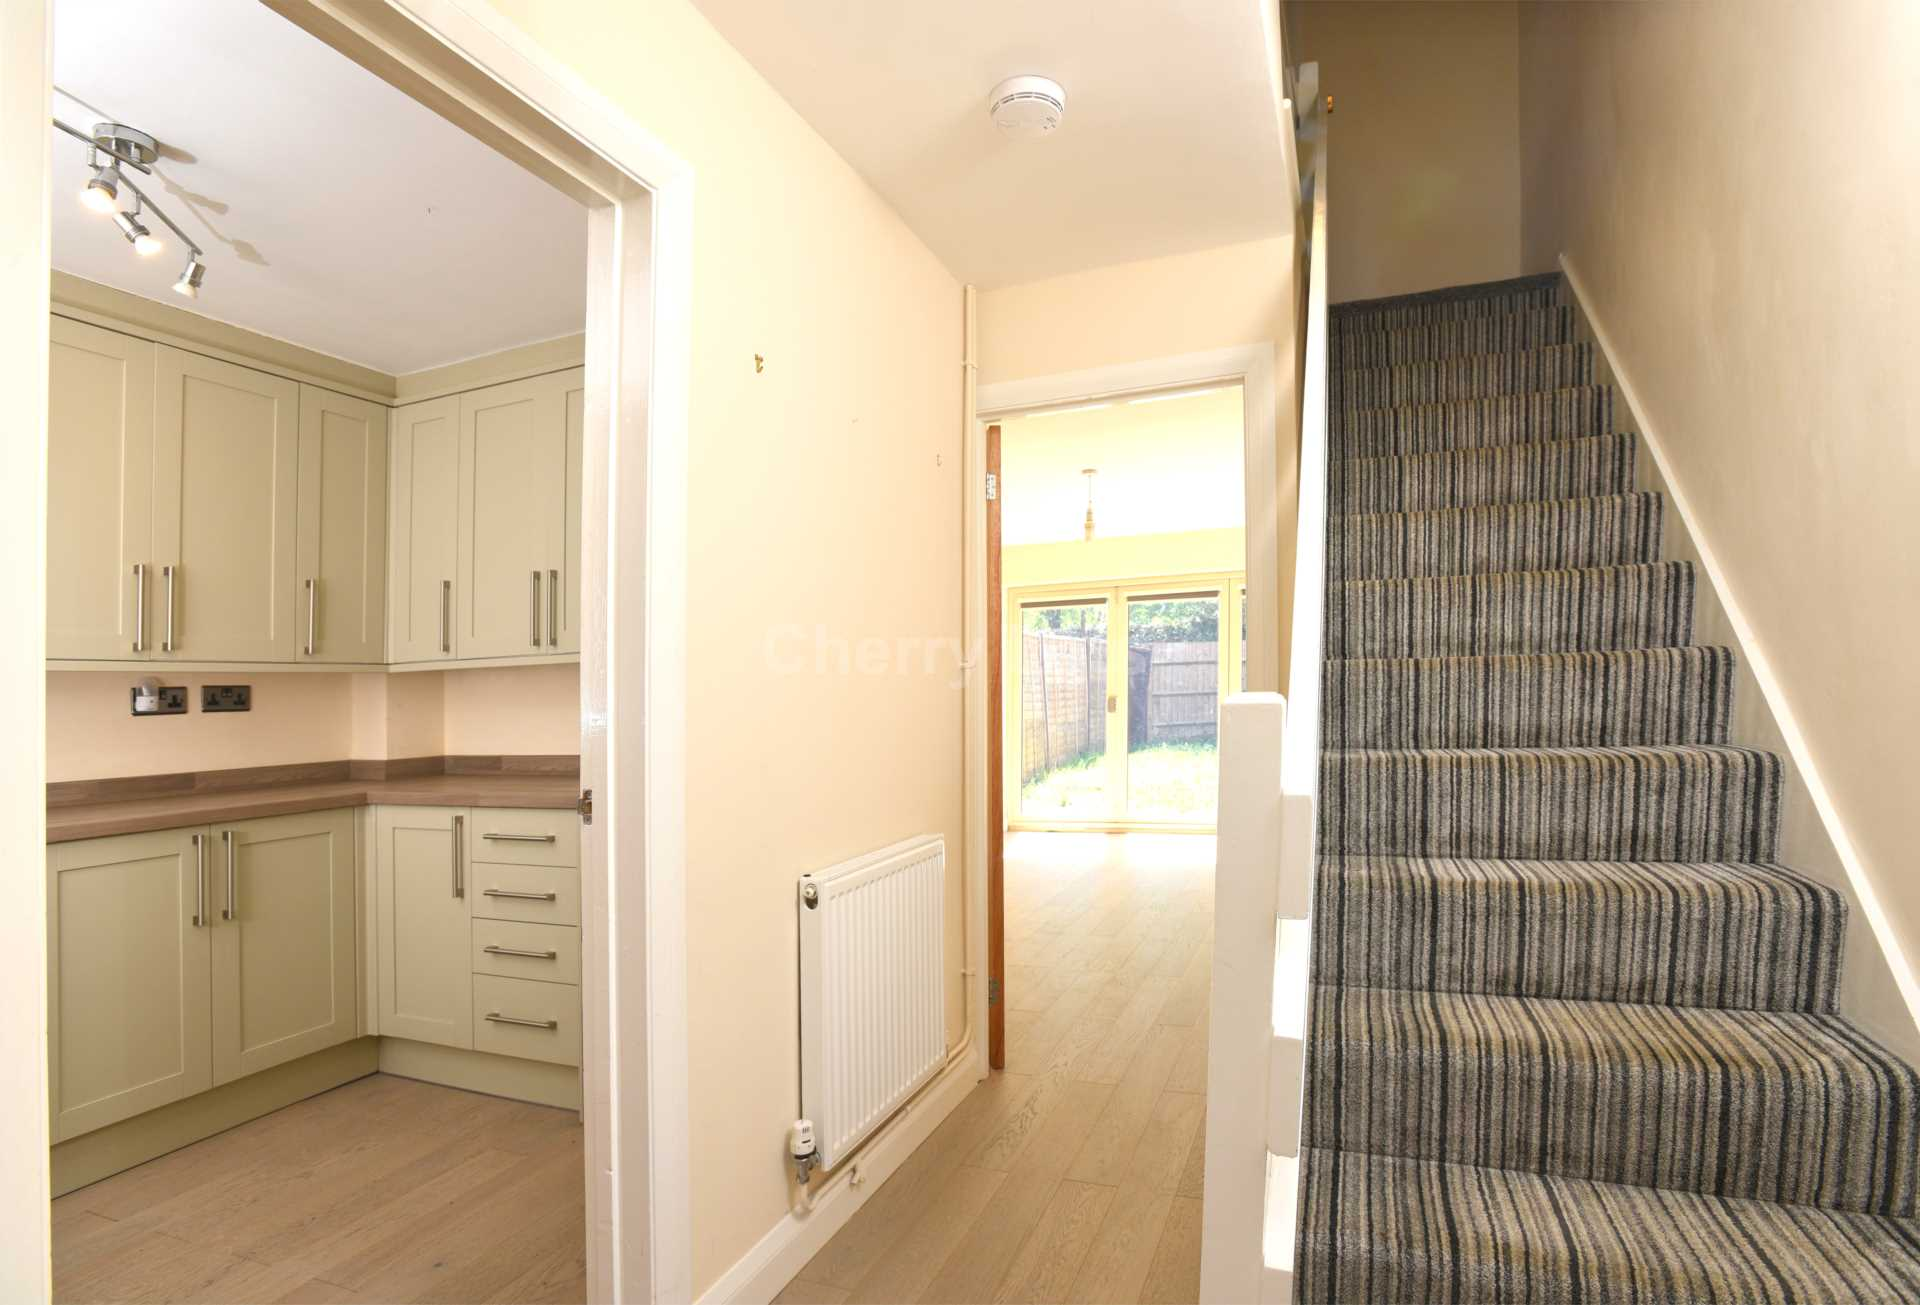 3 bed terraced house to rent in Keytes Close, Adderbury, OX17 5